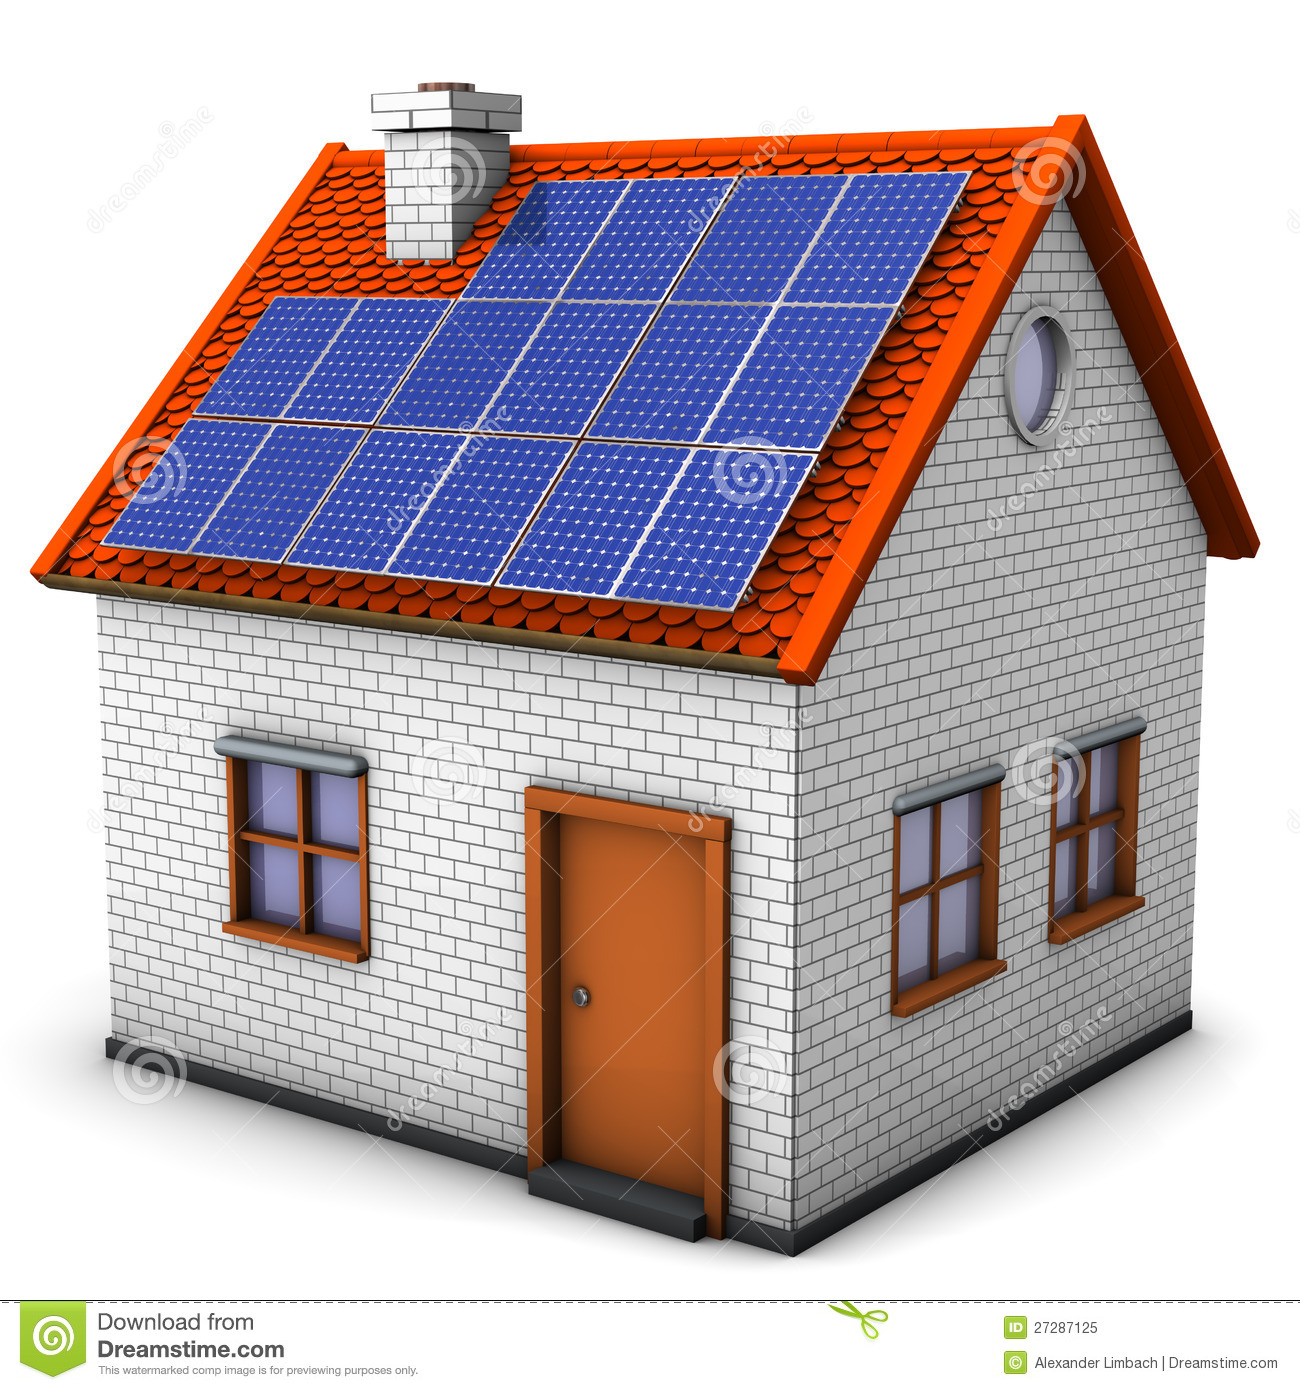 Picture of solar house